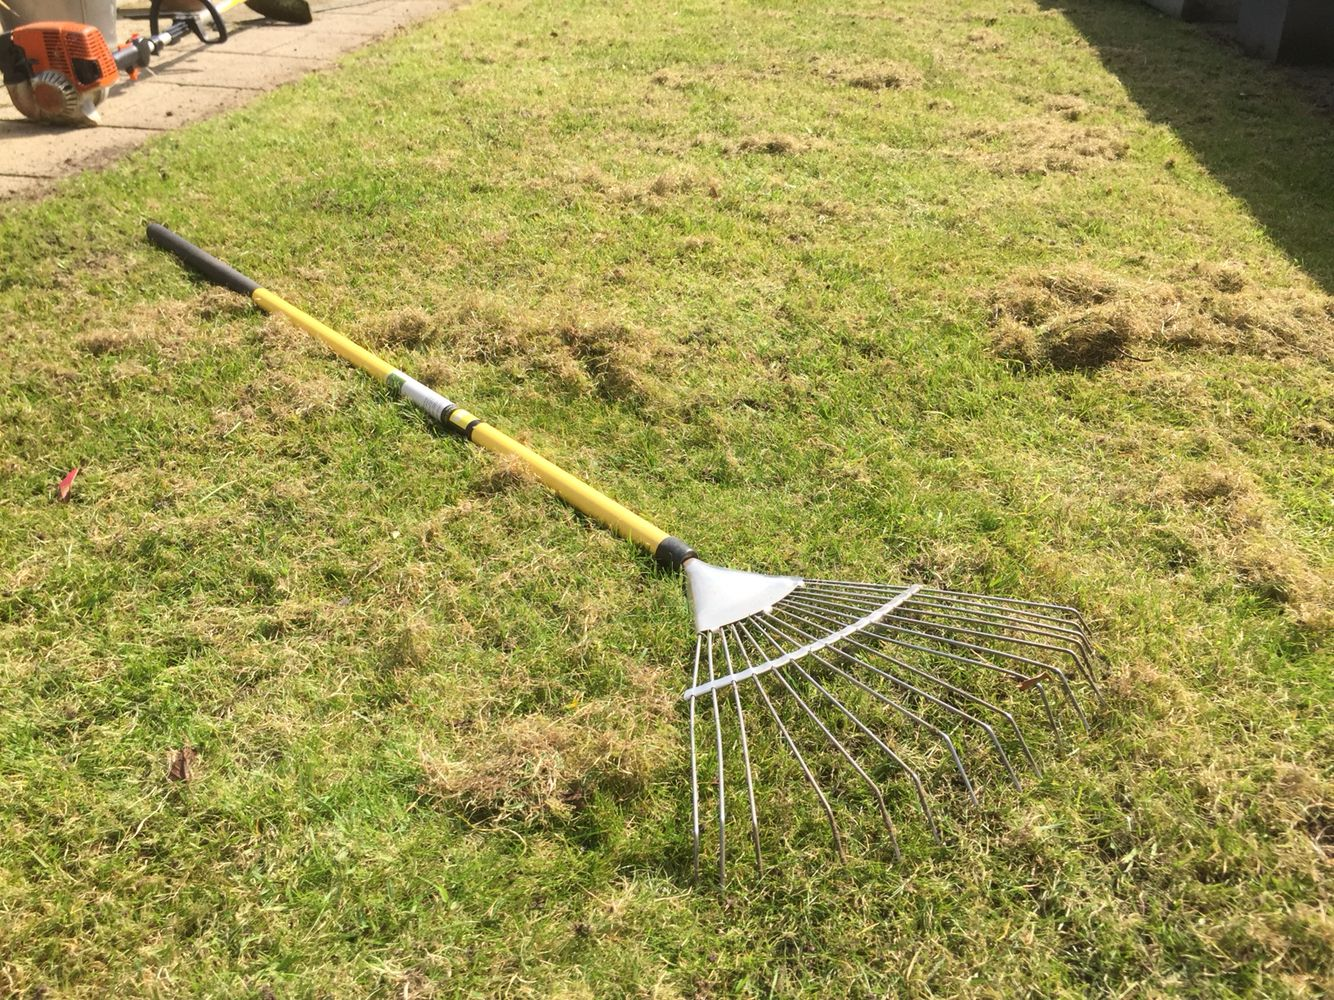 Rake Your Lawn With A Spring Tine Rake To Remove Dead Thatch And Moss This Will Improve Your Grass Over The Long Term Even If Short T Garden Tools Lawn Garden